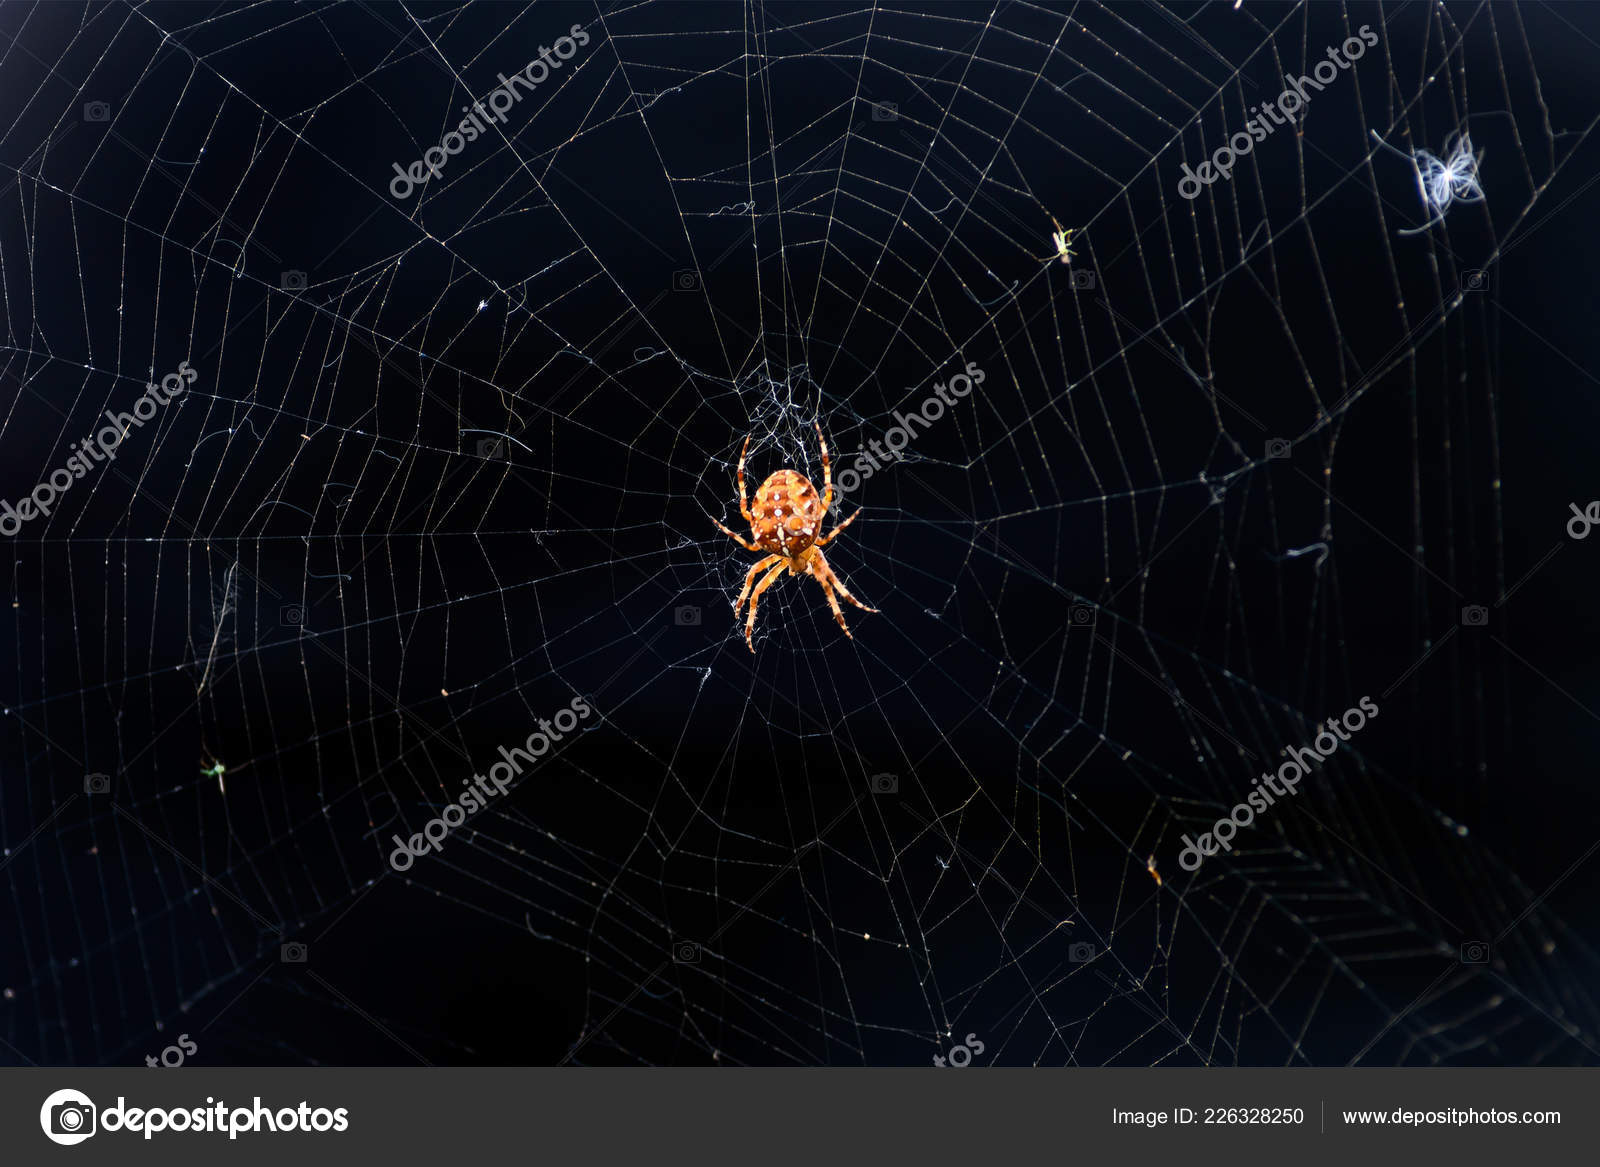 Red Spider Spider Web Dark Background European Garden Spider Scary